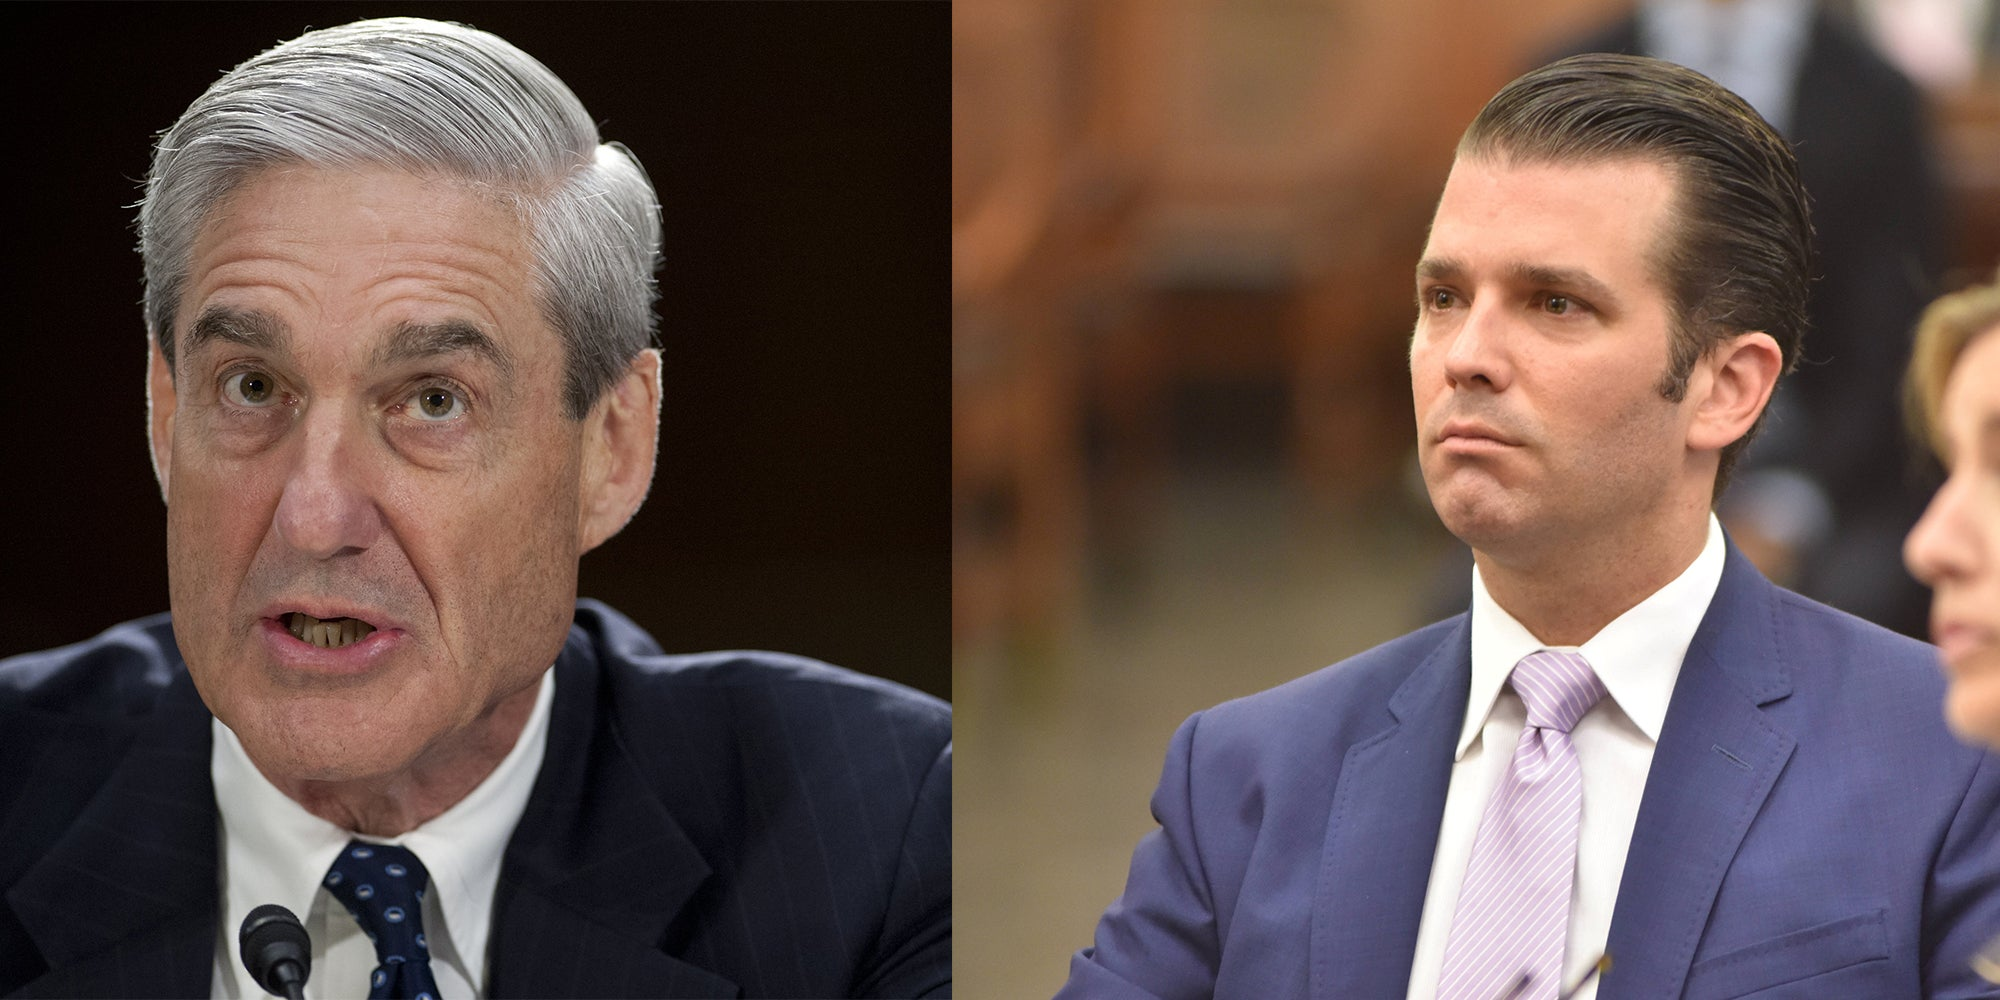 Donald Trump Jr And Robert Mueller Were Spotted At The Airport